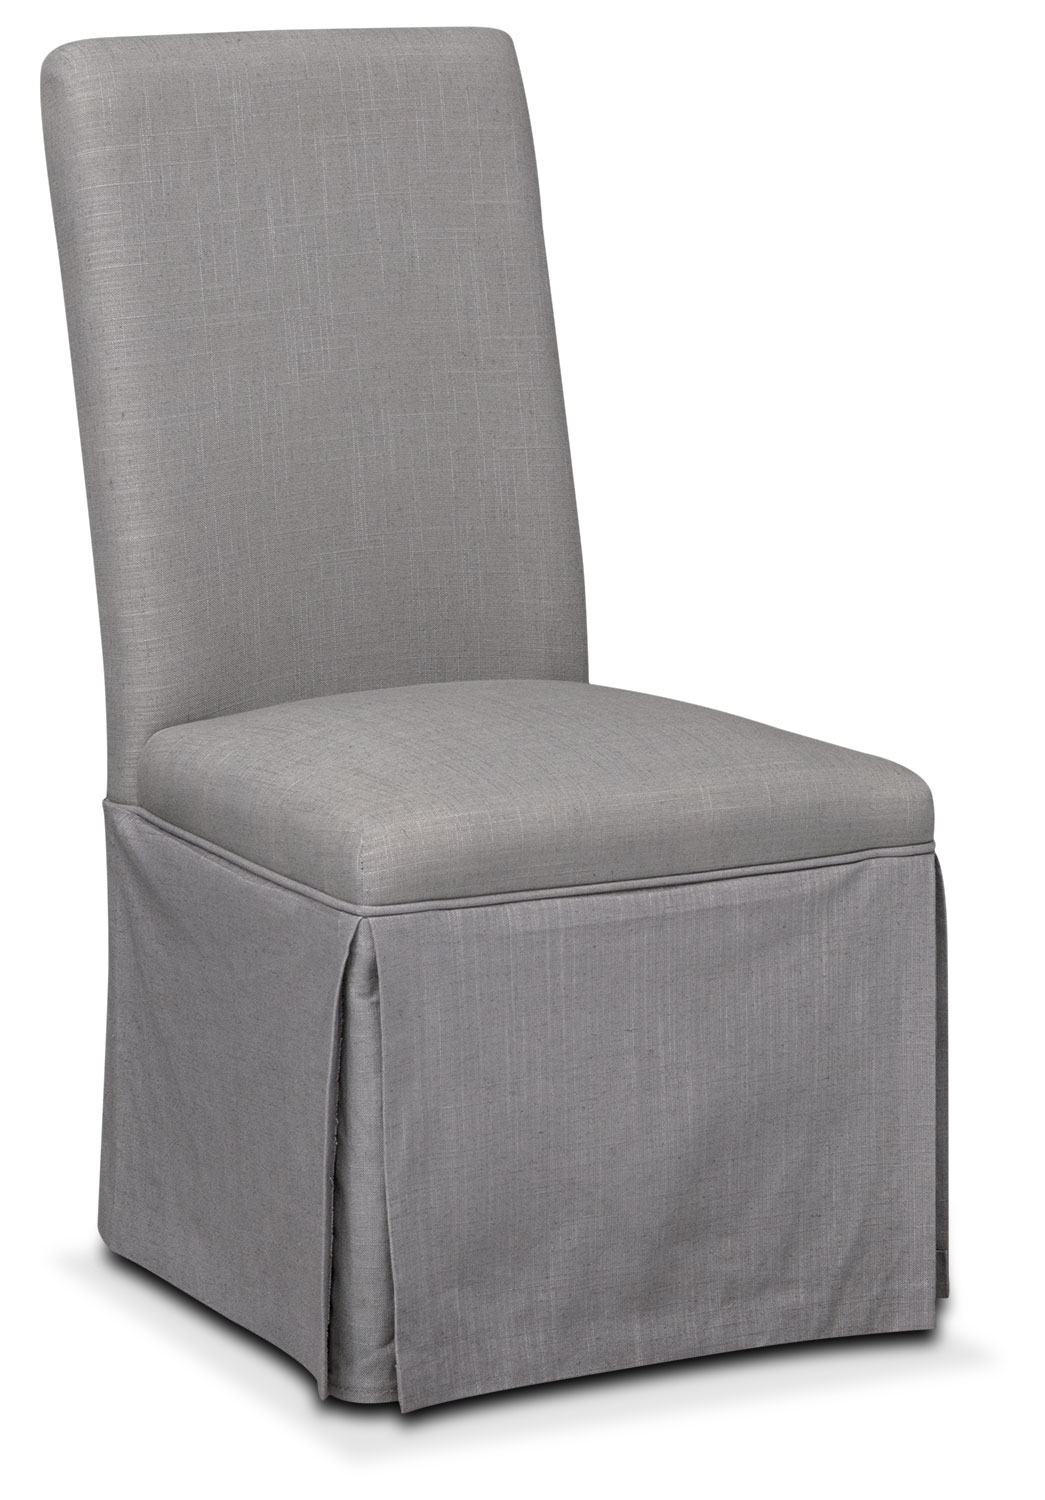 Patrice Side Chair - Gray